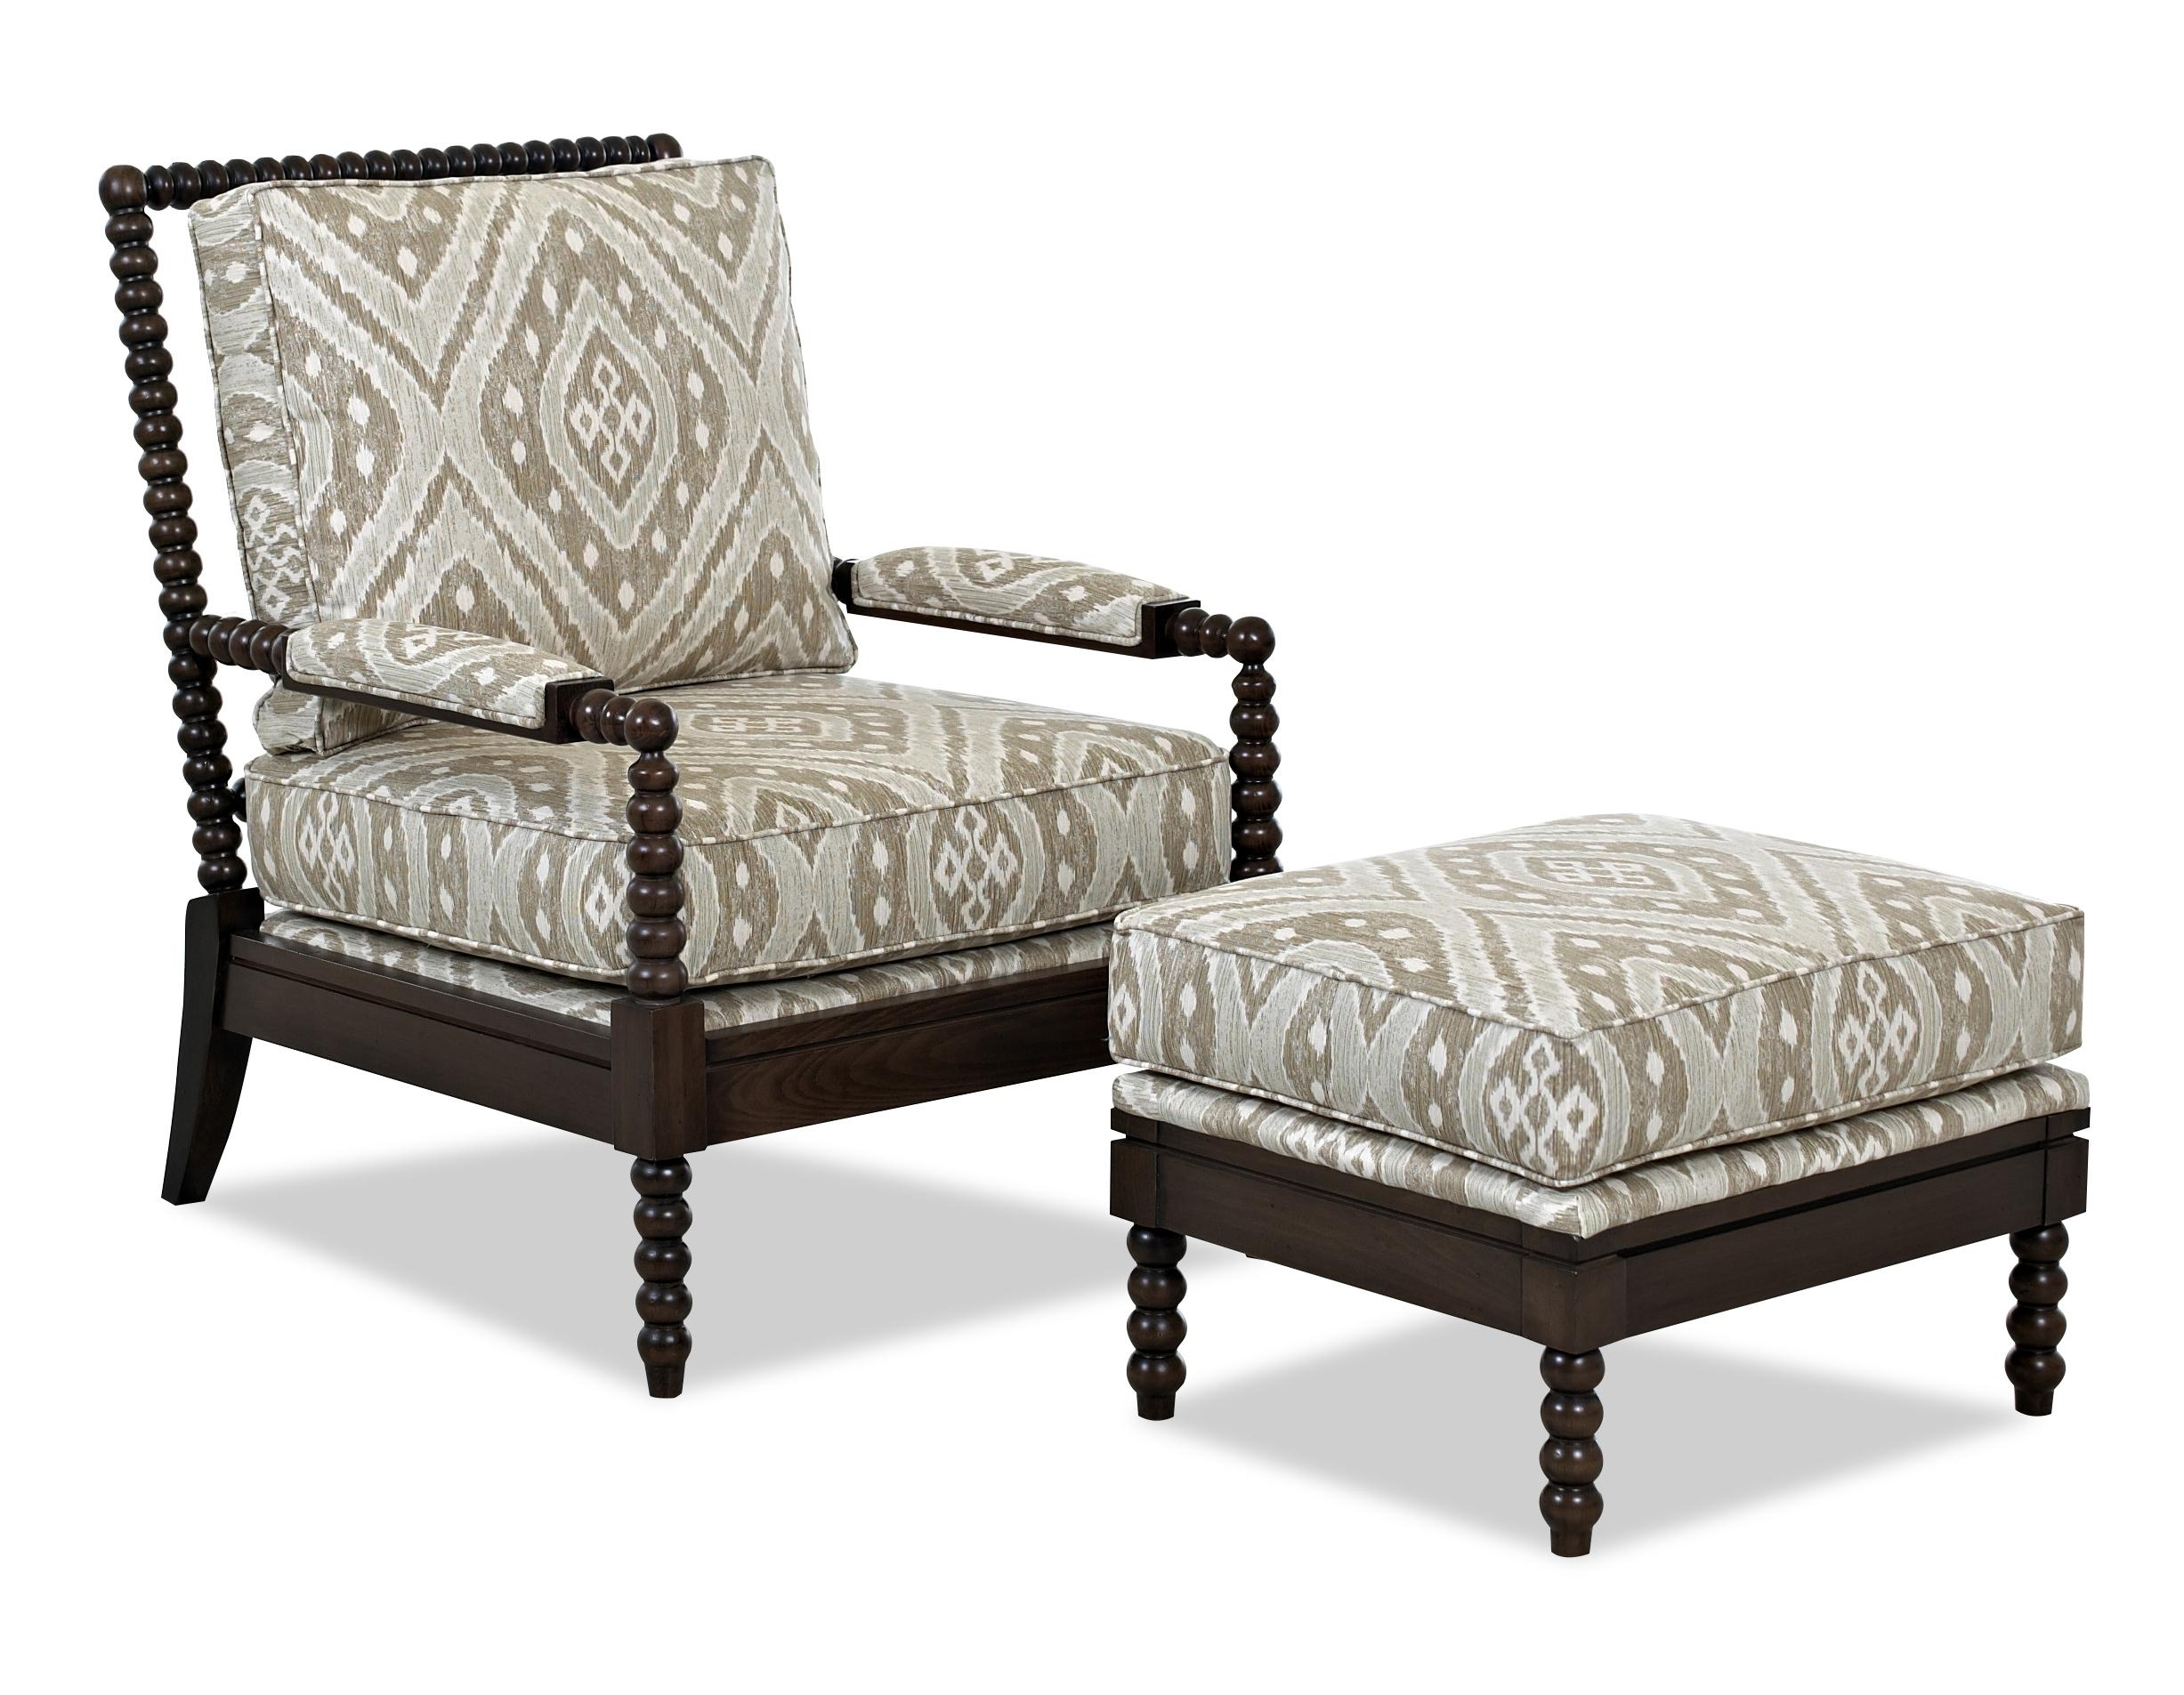 Incredible Accent Chair With Ottoman Amazing Of Armchair In Chairs with regard to Chairs With Ottoman (Image 9 of 15)